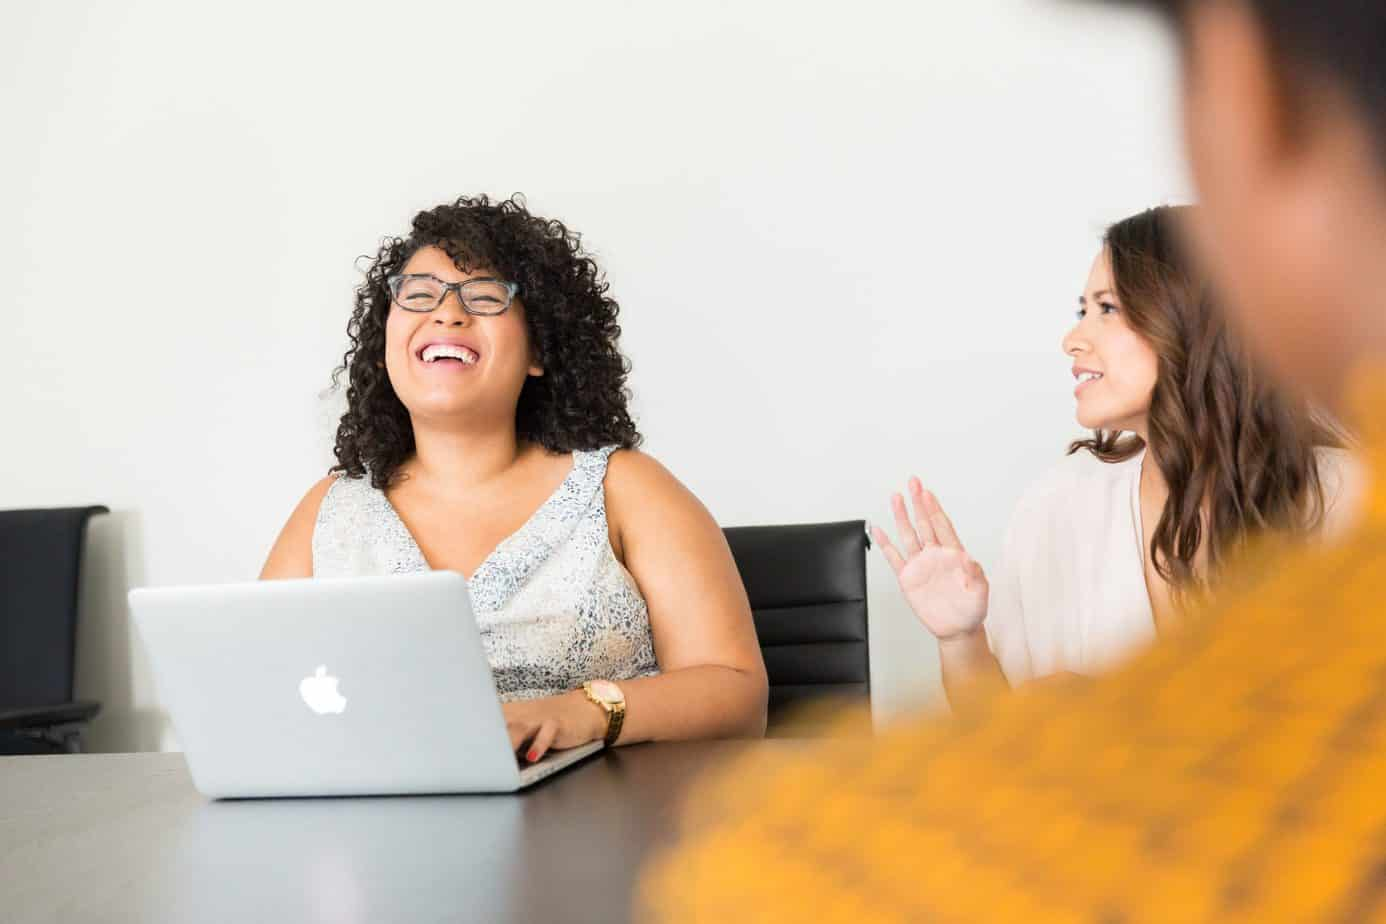 Smiling women working on a laptop